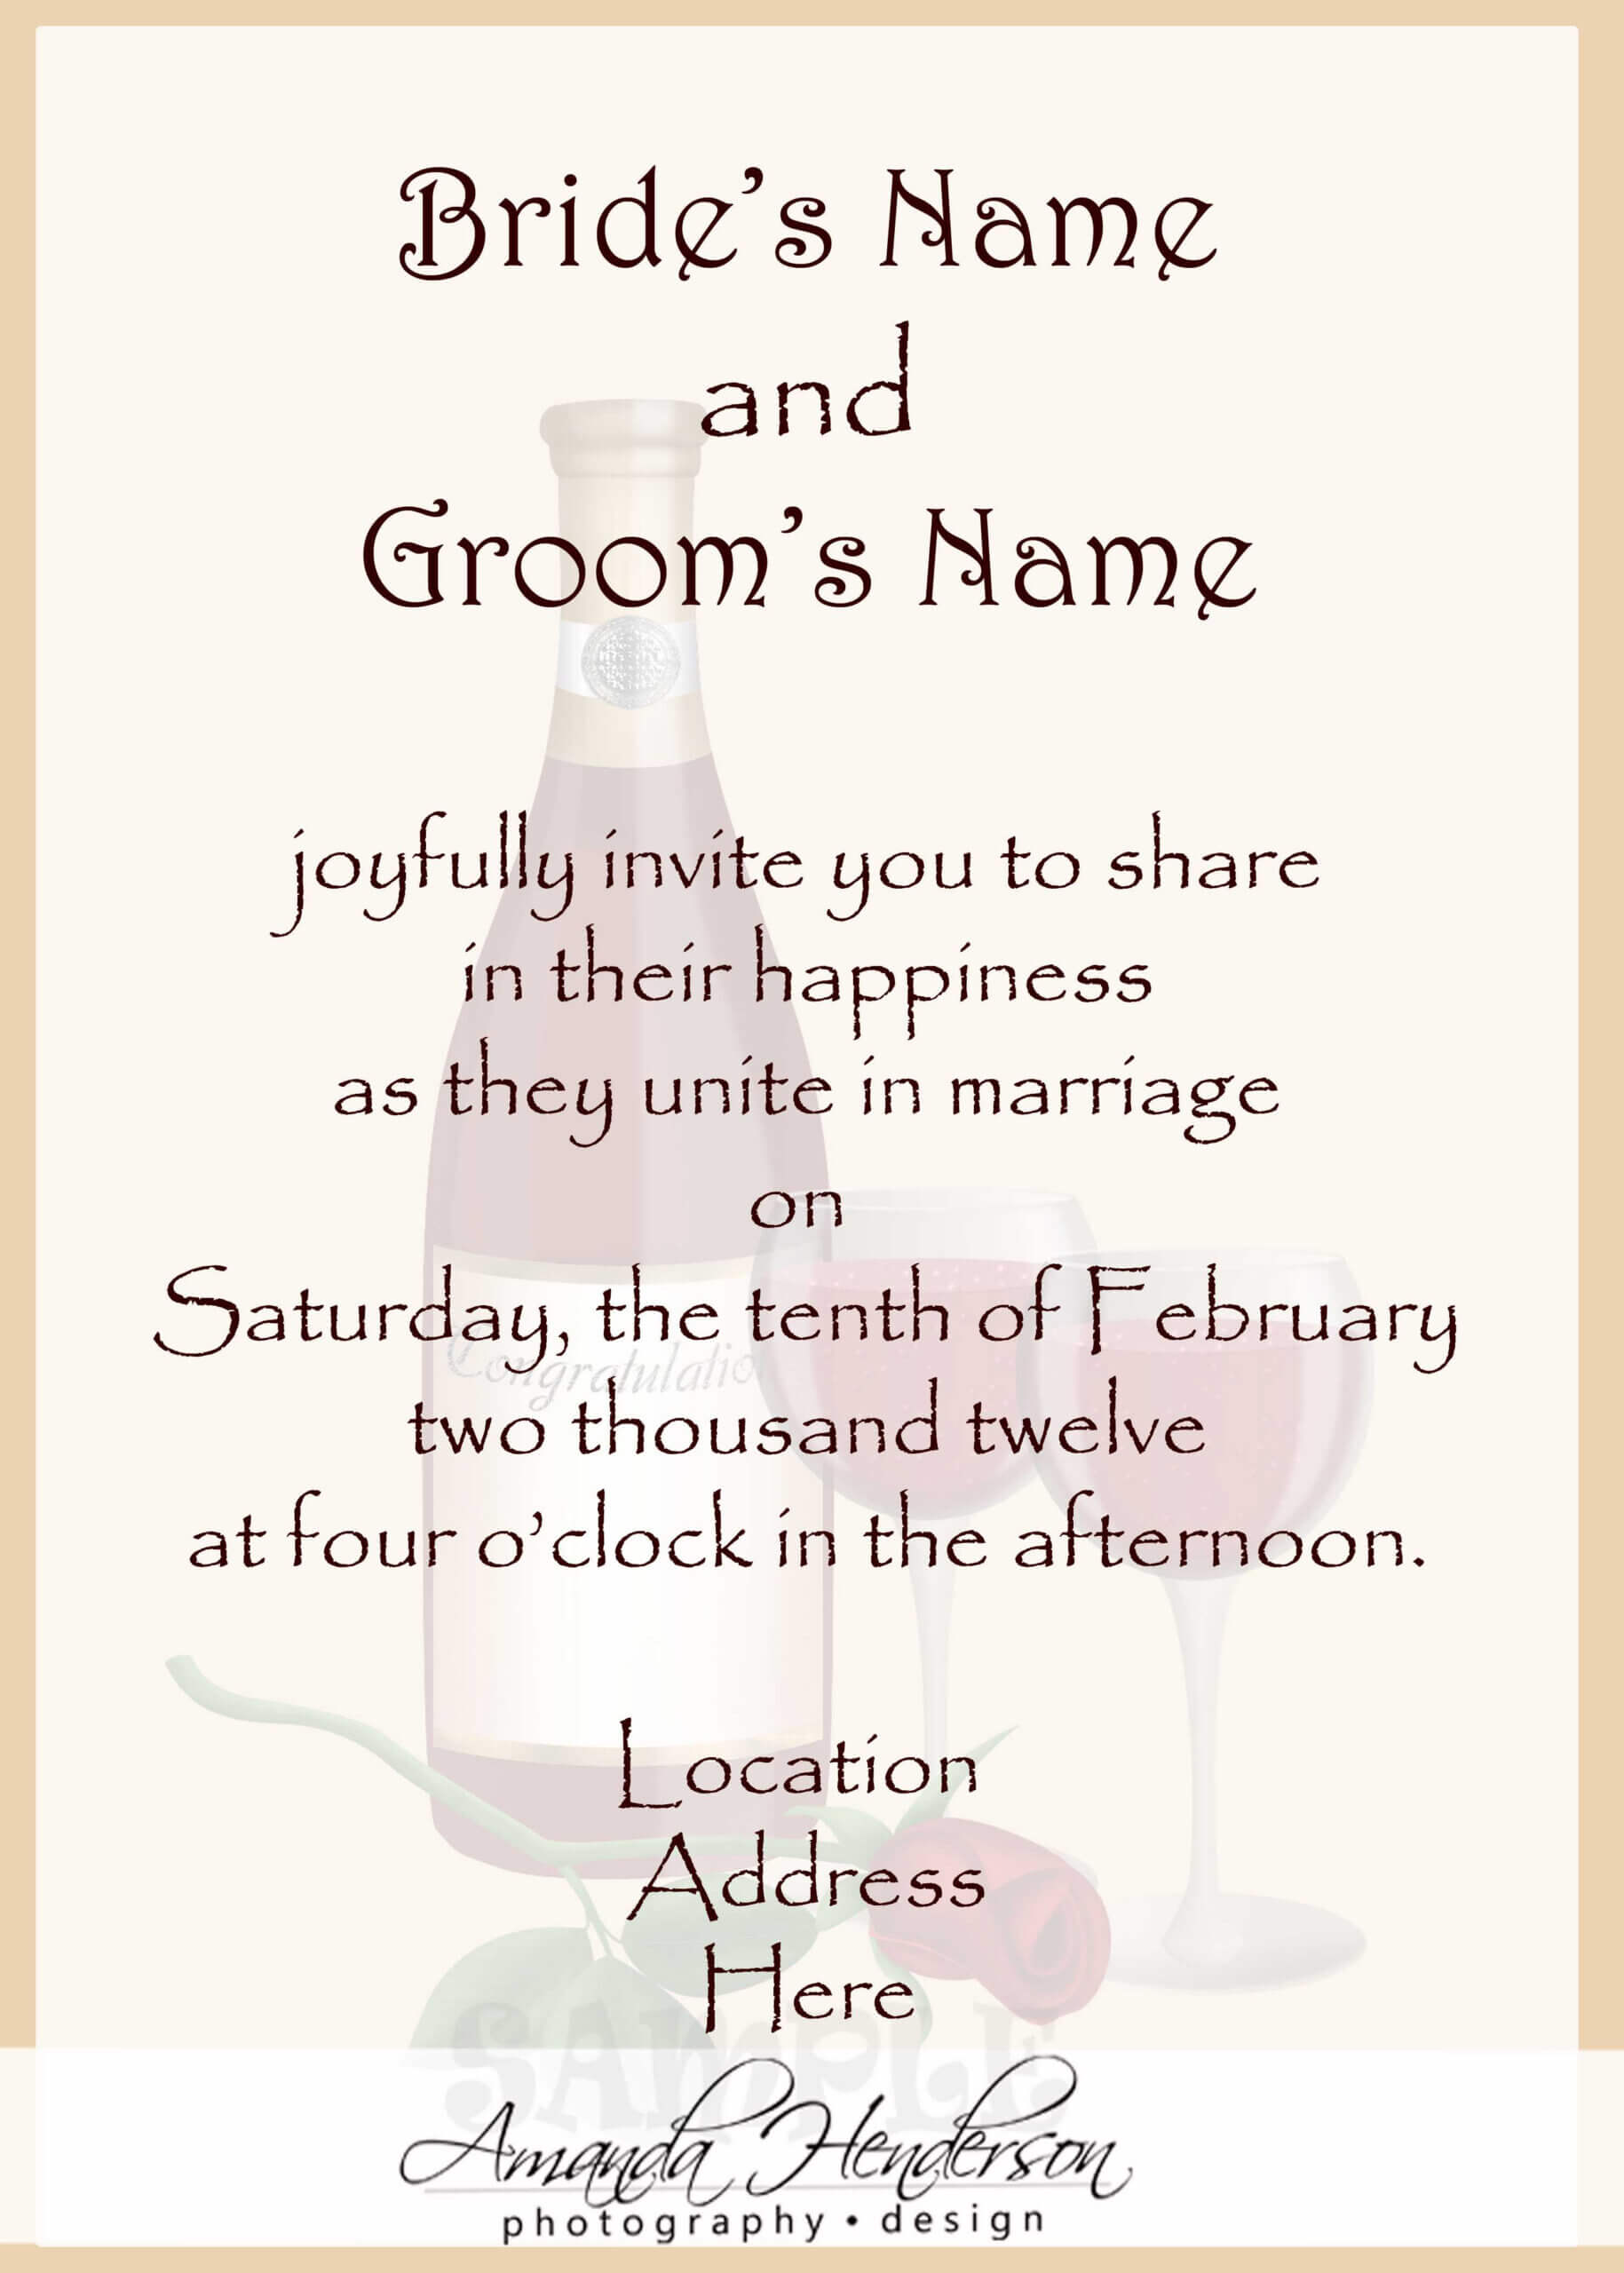 Sample Wedding Invitation Card : Sample Wedding Invitation Intended For Sample Wedding Invitation Cards Templates